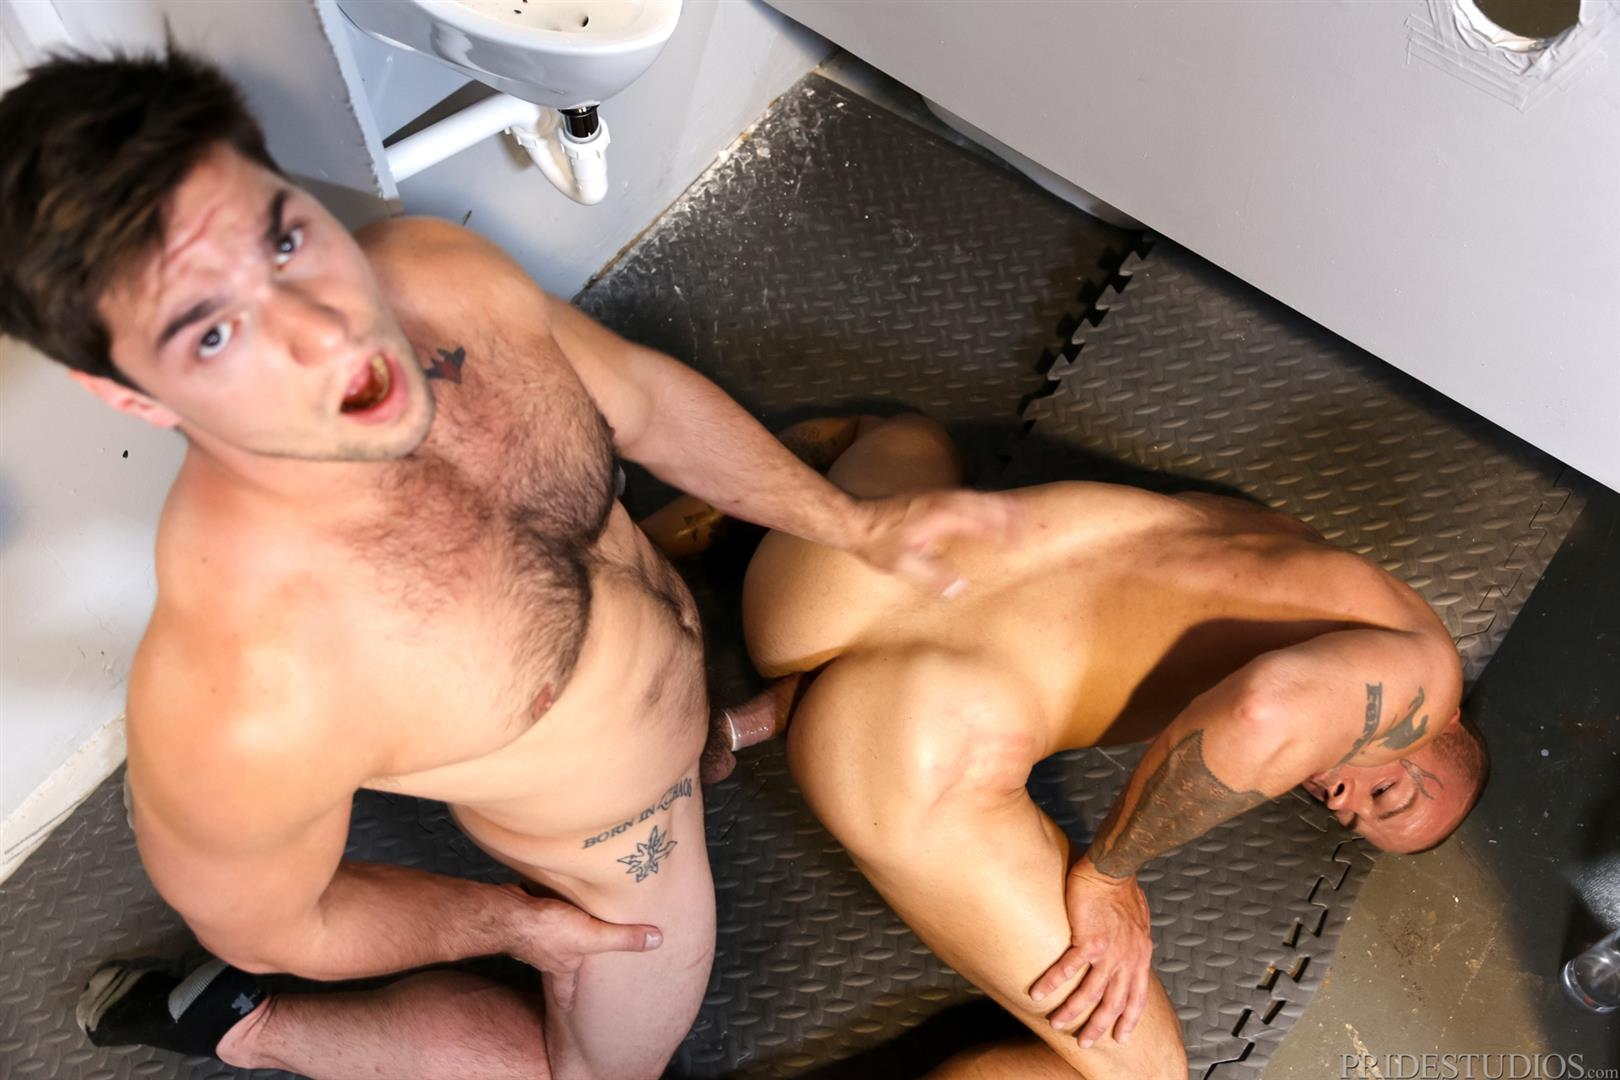 Extra-Big-Dicks-Sean-Duran-Fucking-Through-A-Glory-Hole-Amateur-Gay-Porn-14 Getting Fucked By A Big Fat Cock Through a Glory Hole